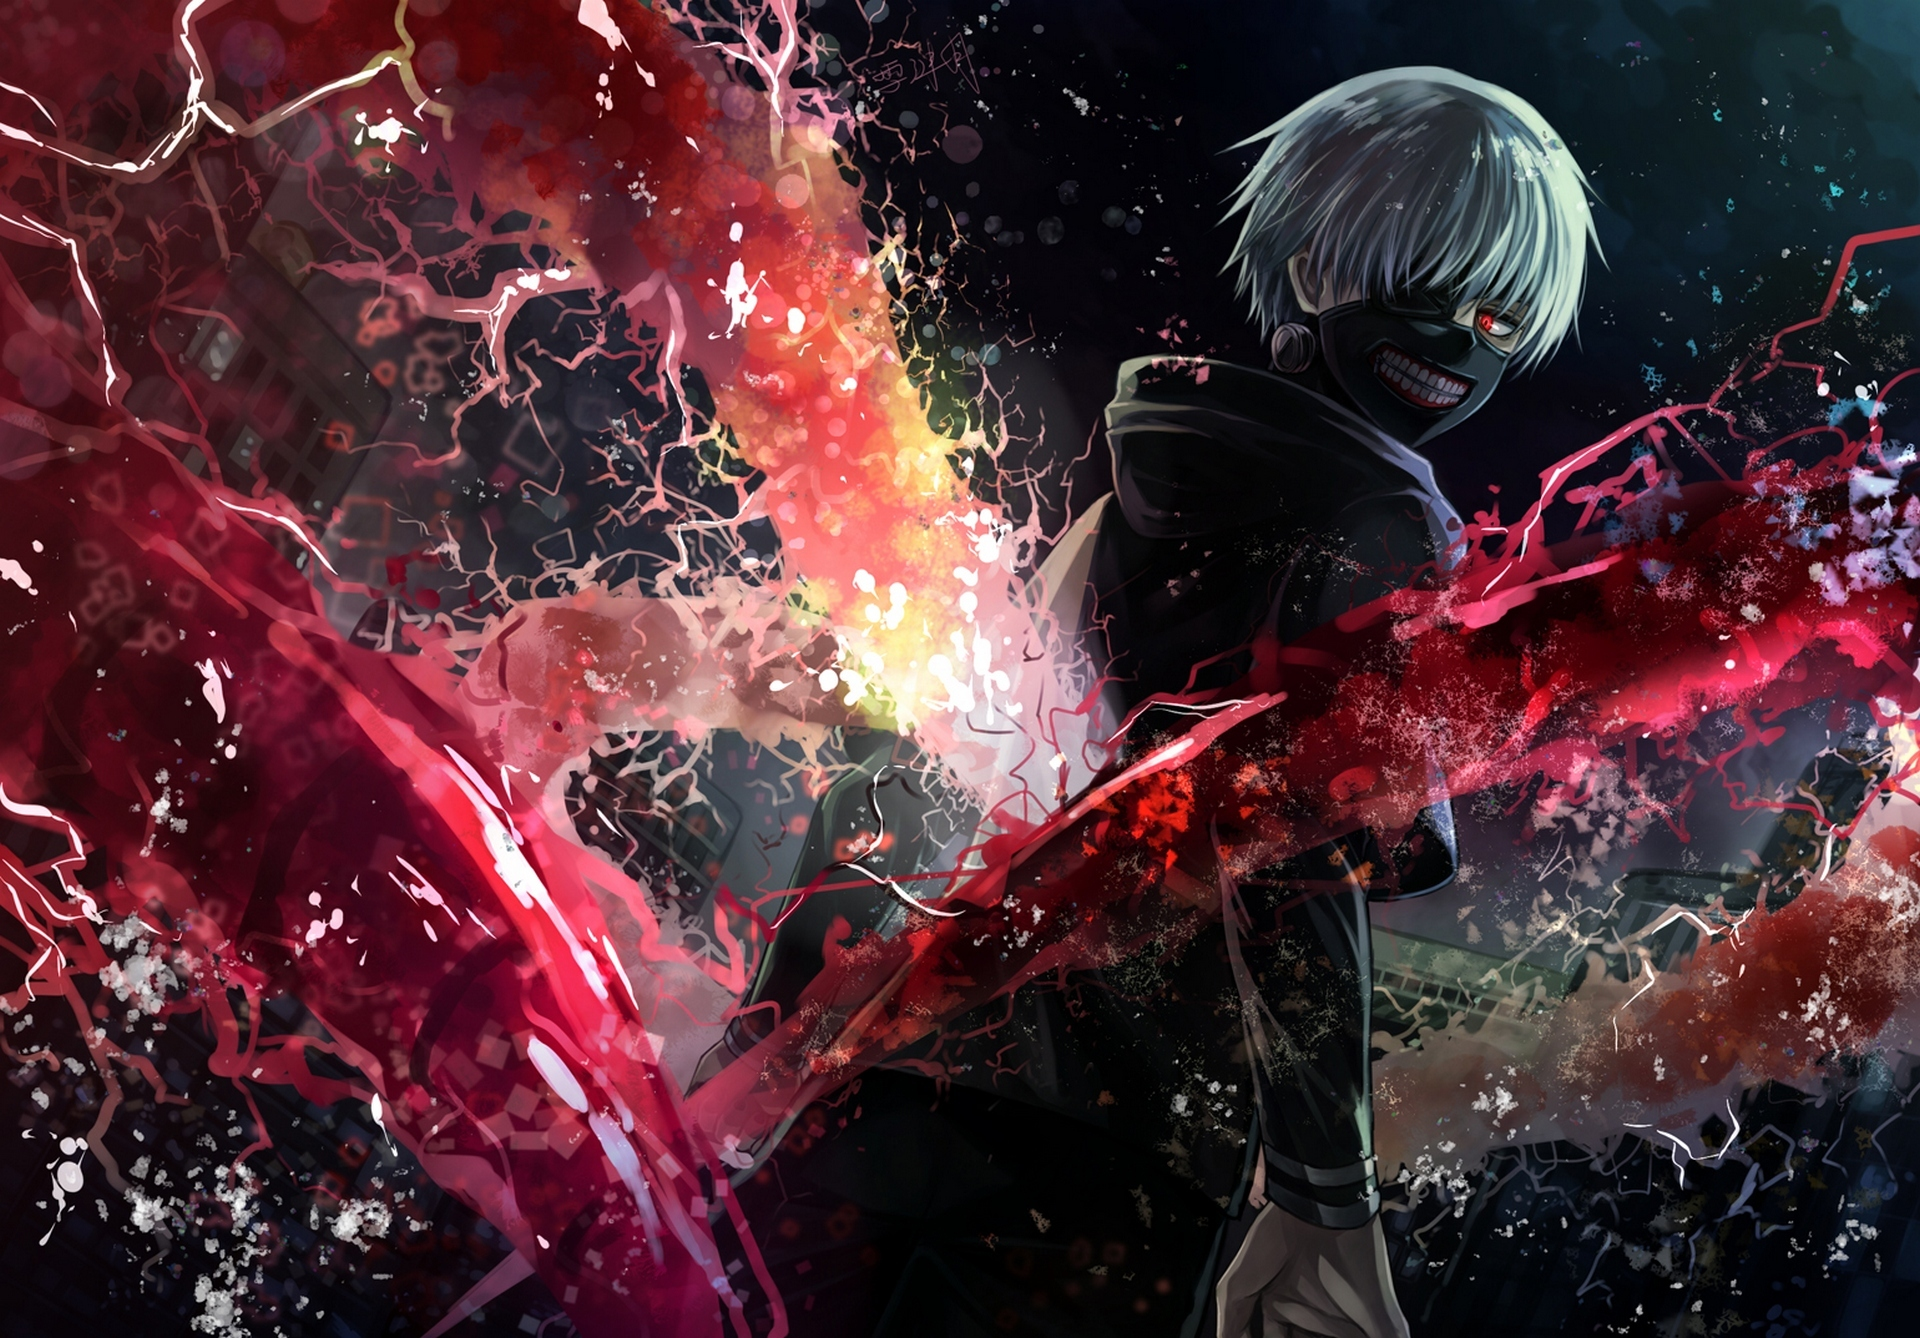 HDoboi.Kiev.ua - Аниме, хентай, anime Tokyo ghoul kaneki ken, anime wallpaper HD for pc